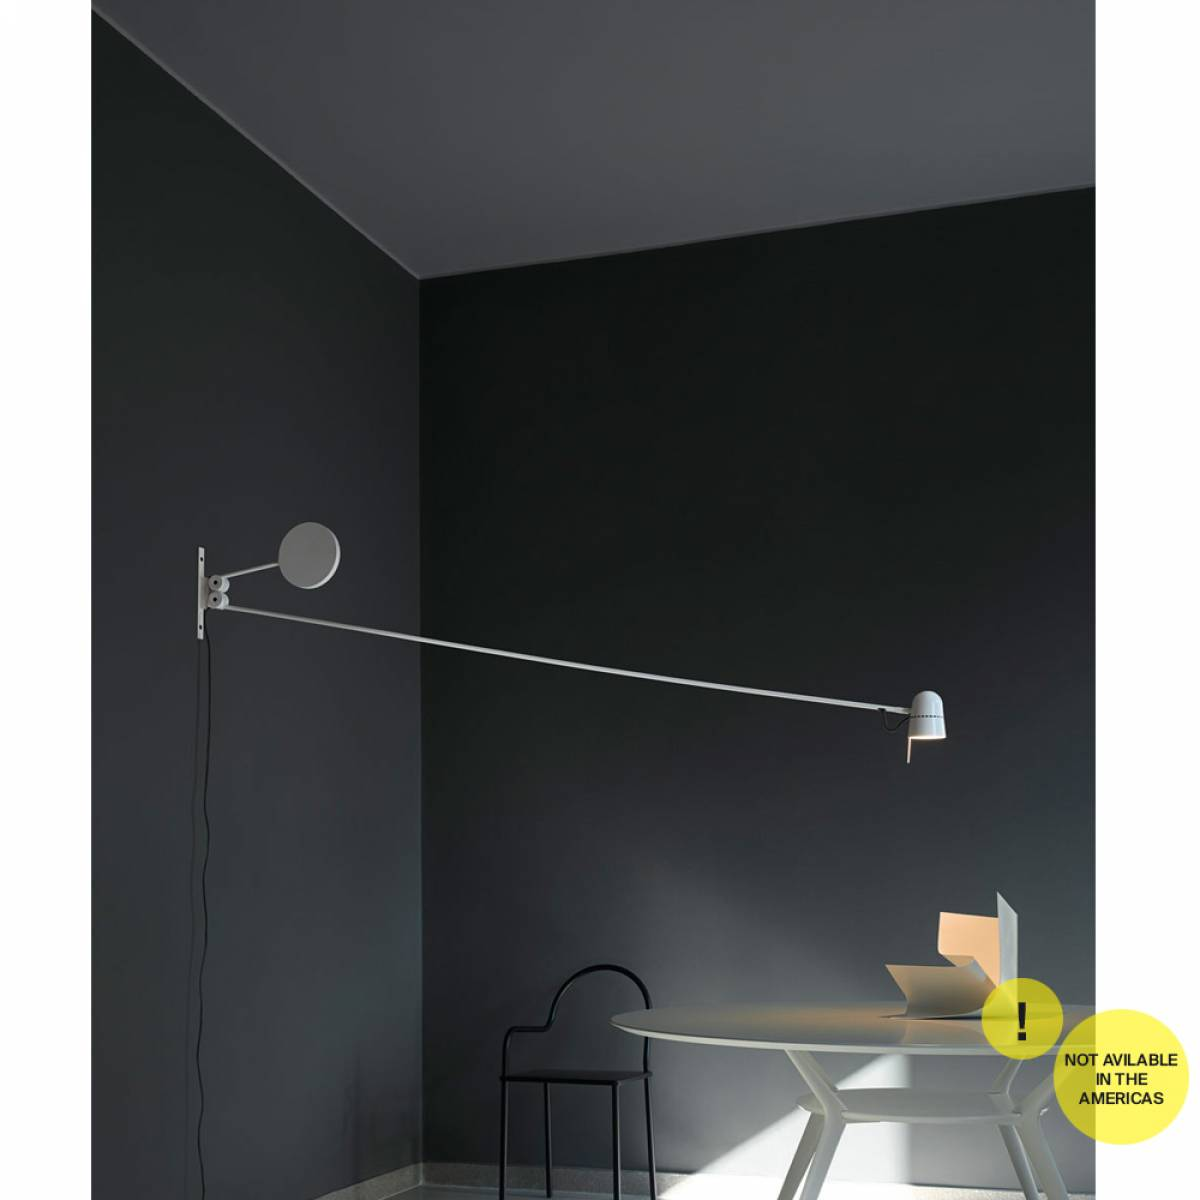 3 Counterbalance wall lamp Luceplan